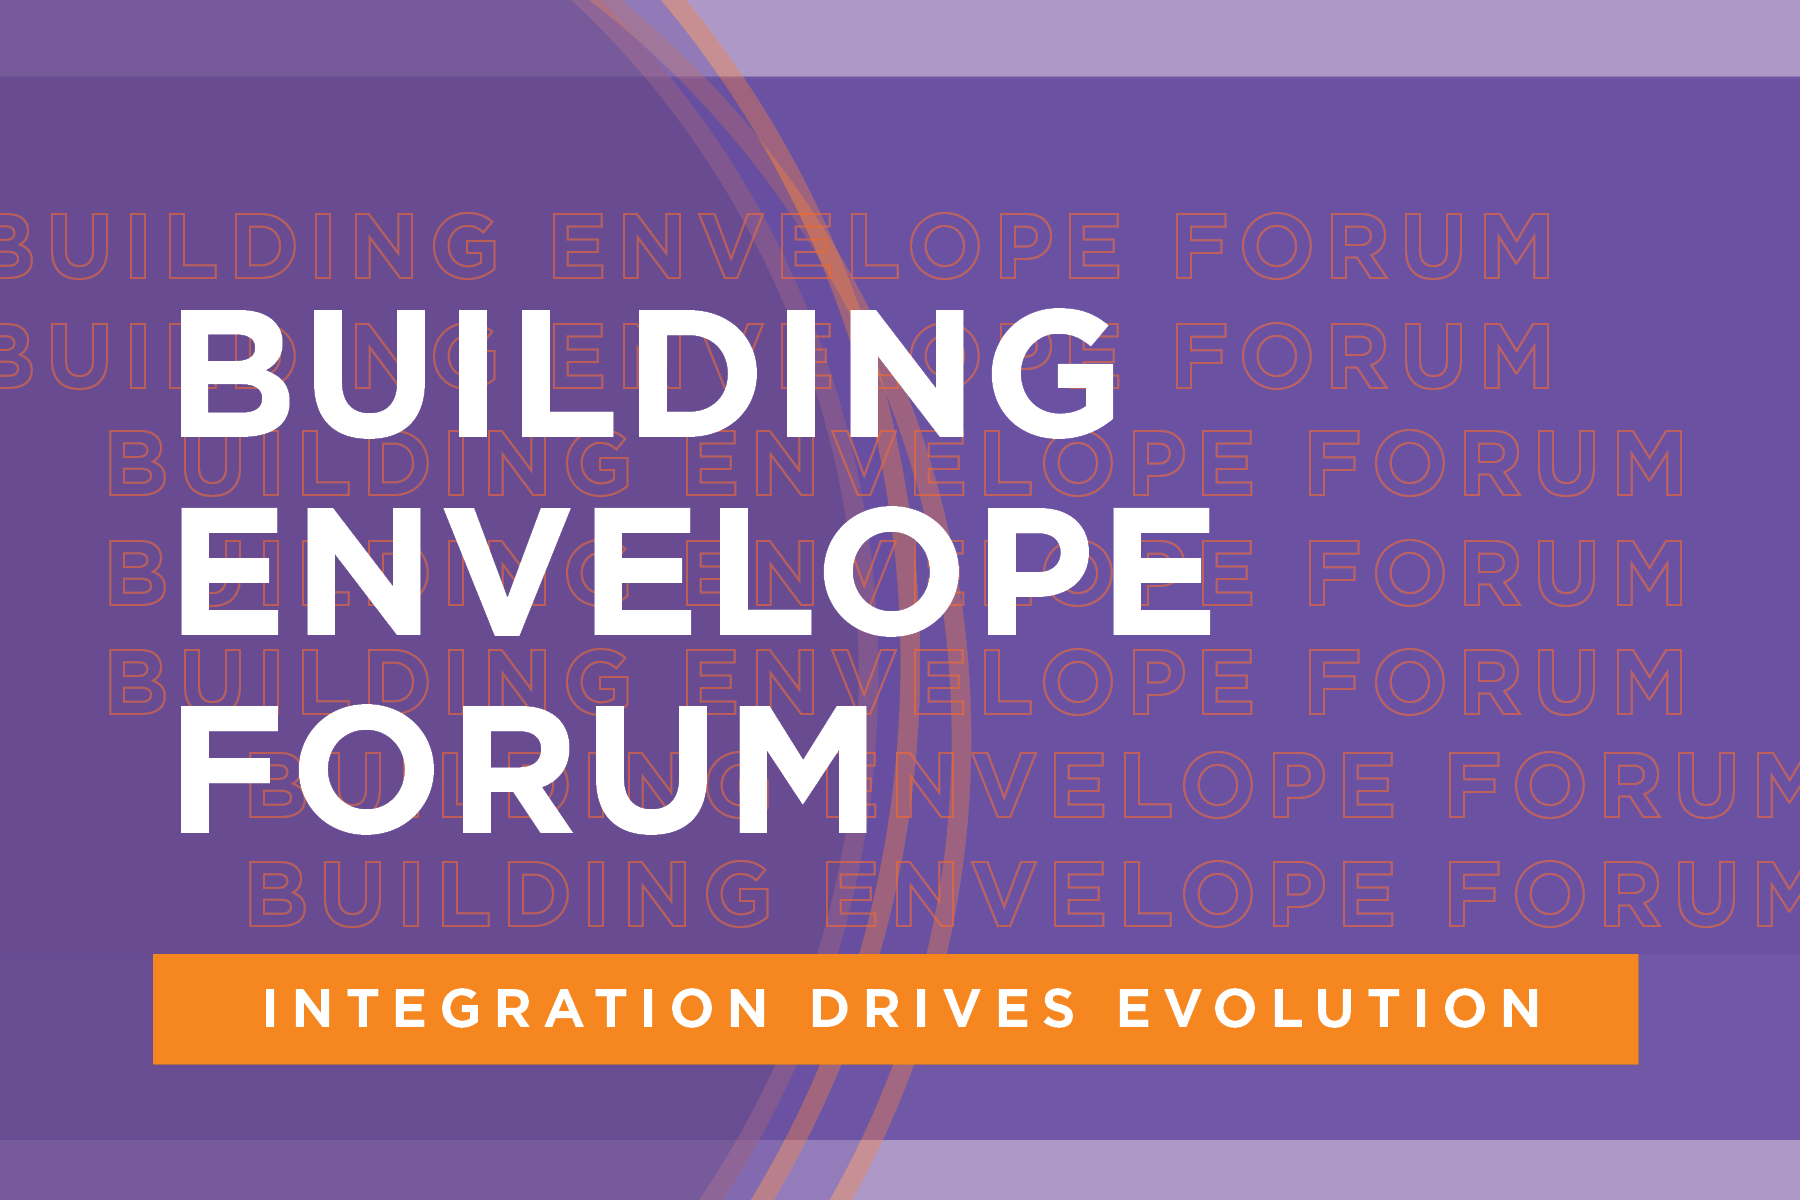 This page is intended only for participants of the 2015 Building Envelope Forum.